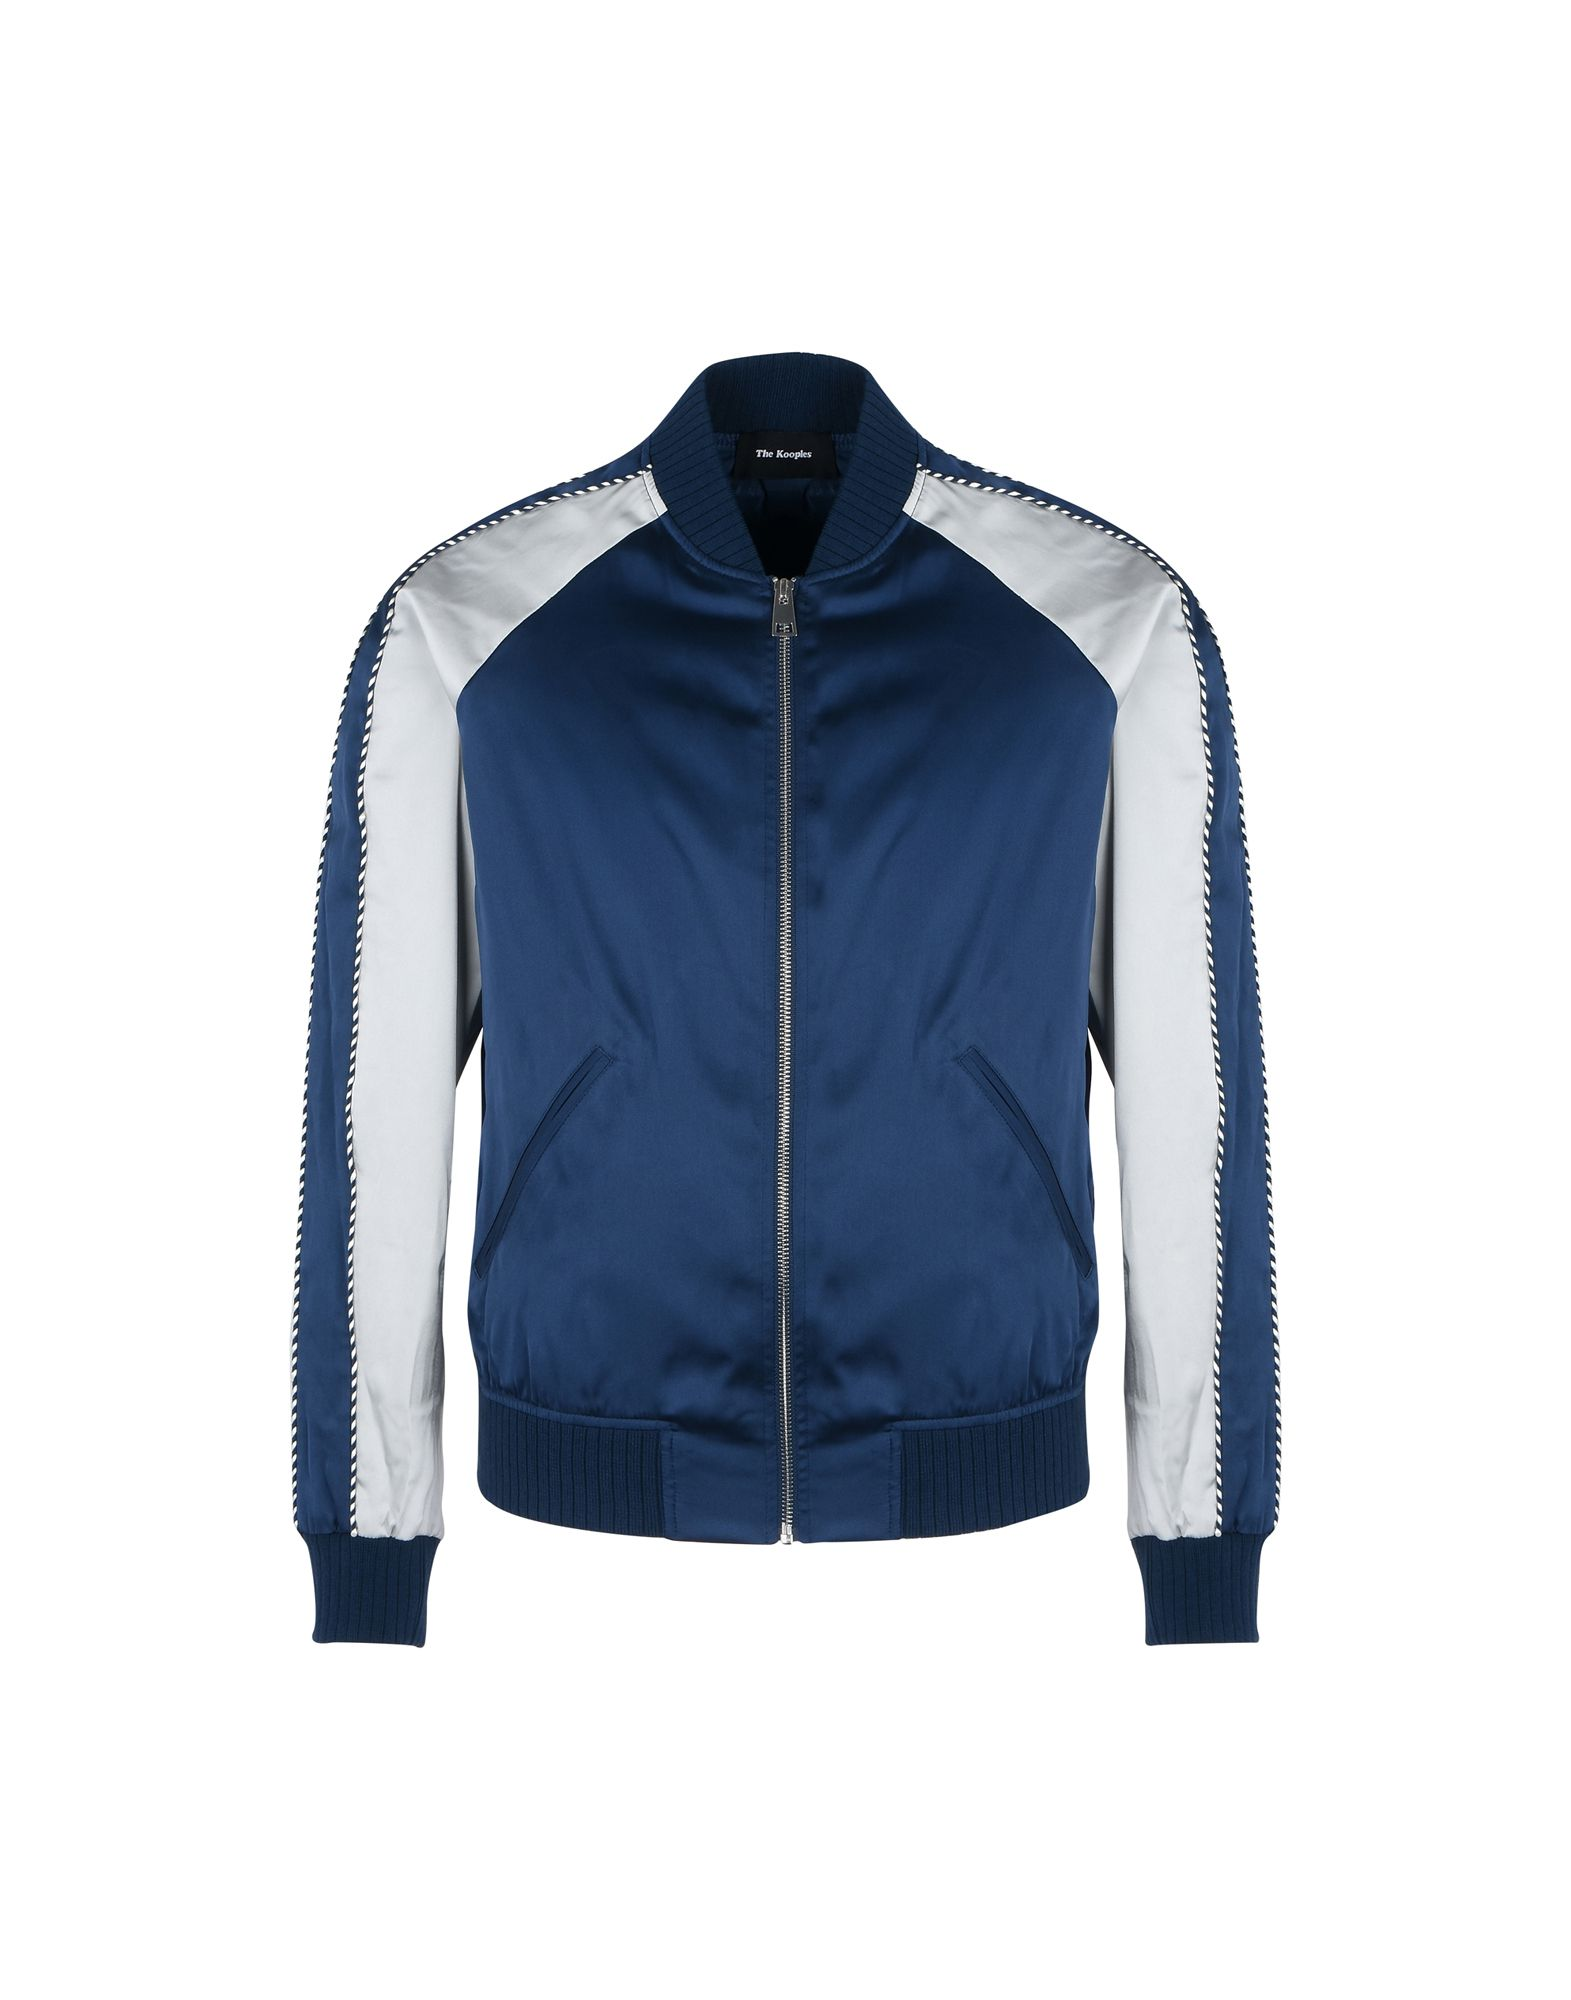 Bomber The Kooples Satin Effect Jacket - Uomo - Acquista online su